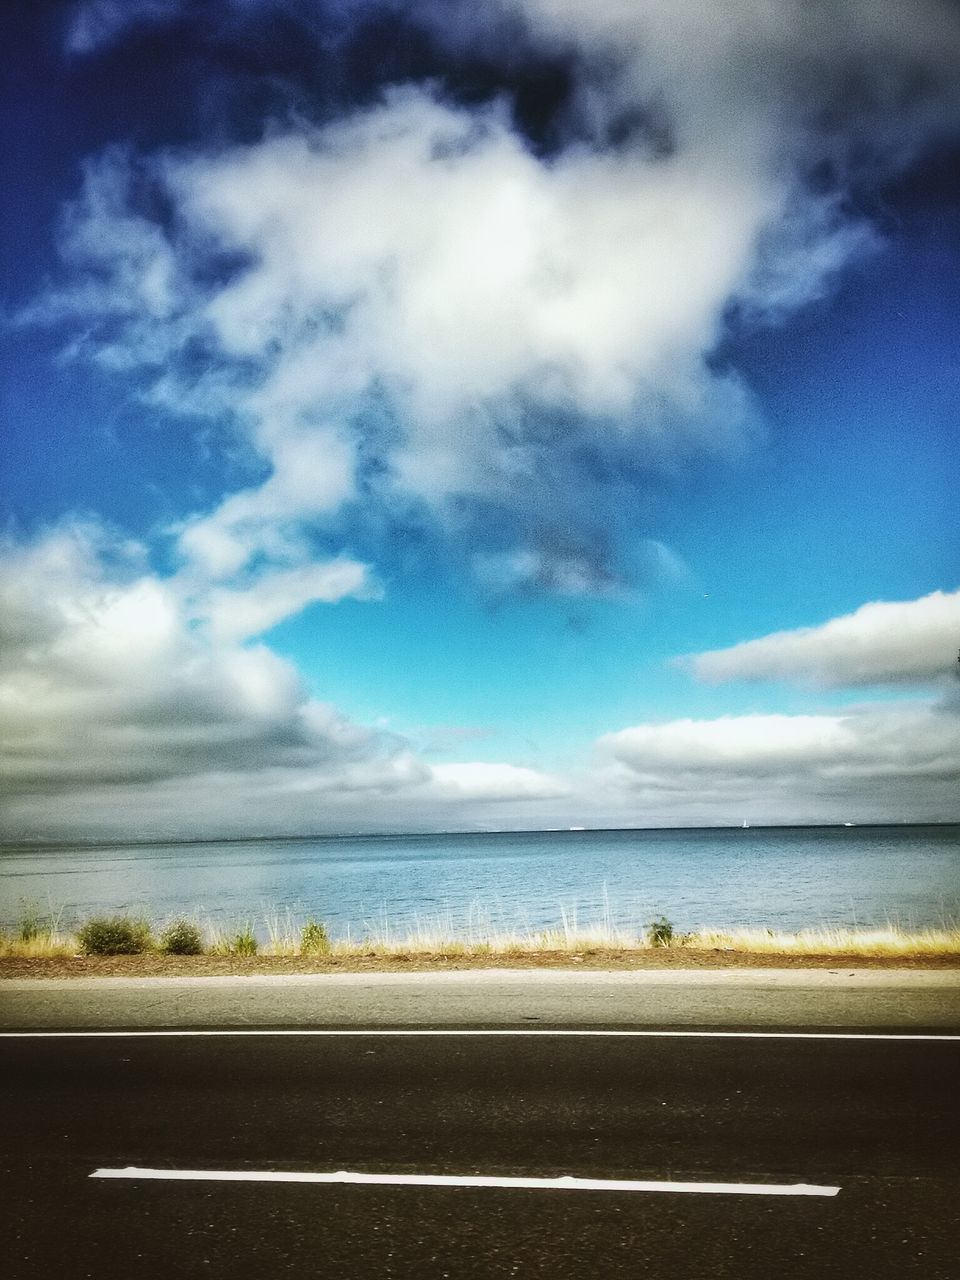 sky, cloud - sky, road, sea, scenics, tranquility, horizon over water, day, nature, no people, tranquil scene, beauty in nature, transportation, outdoors, beach, water